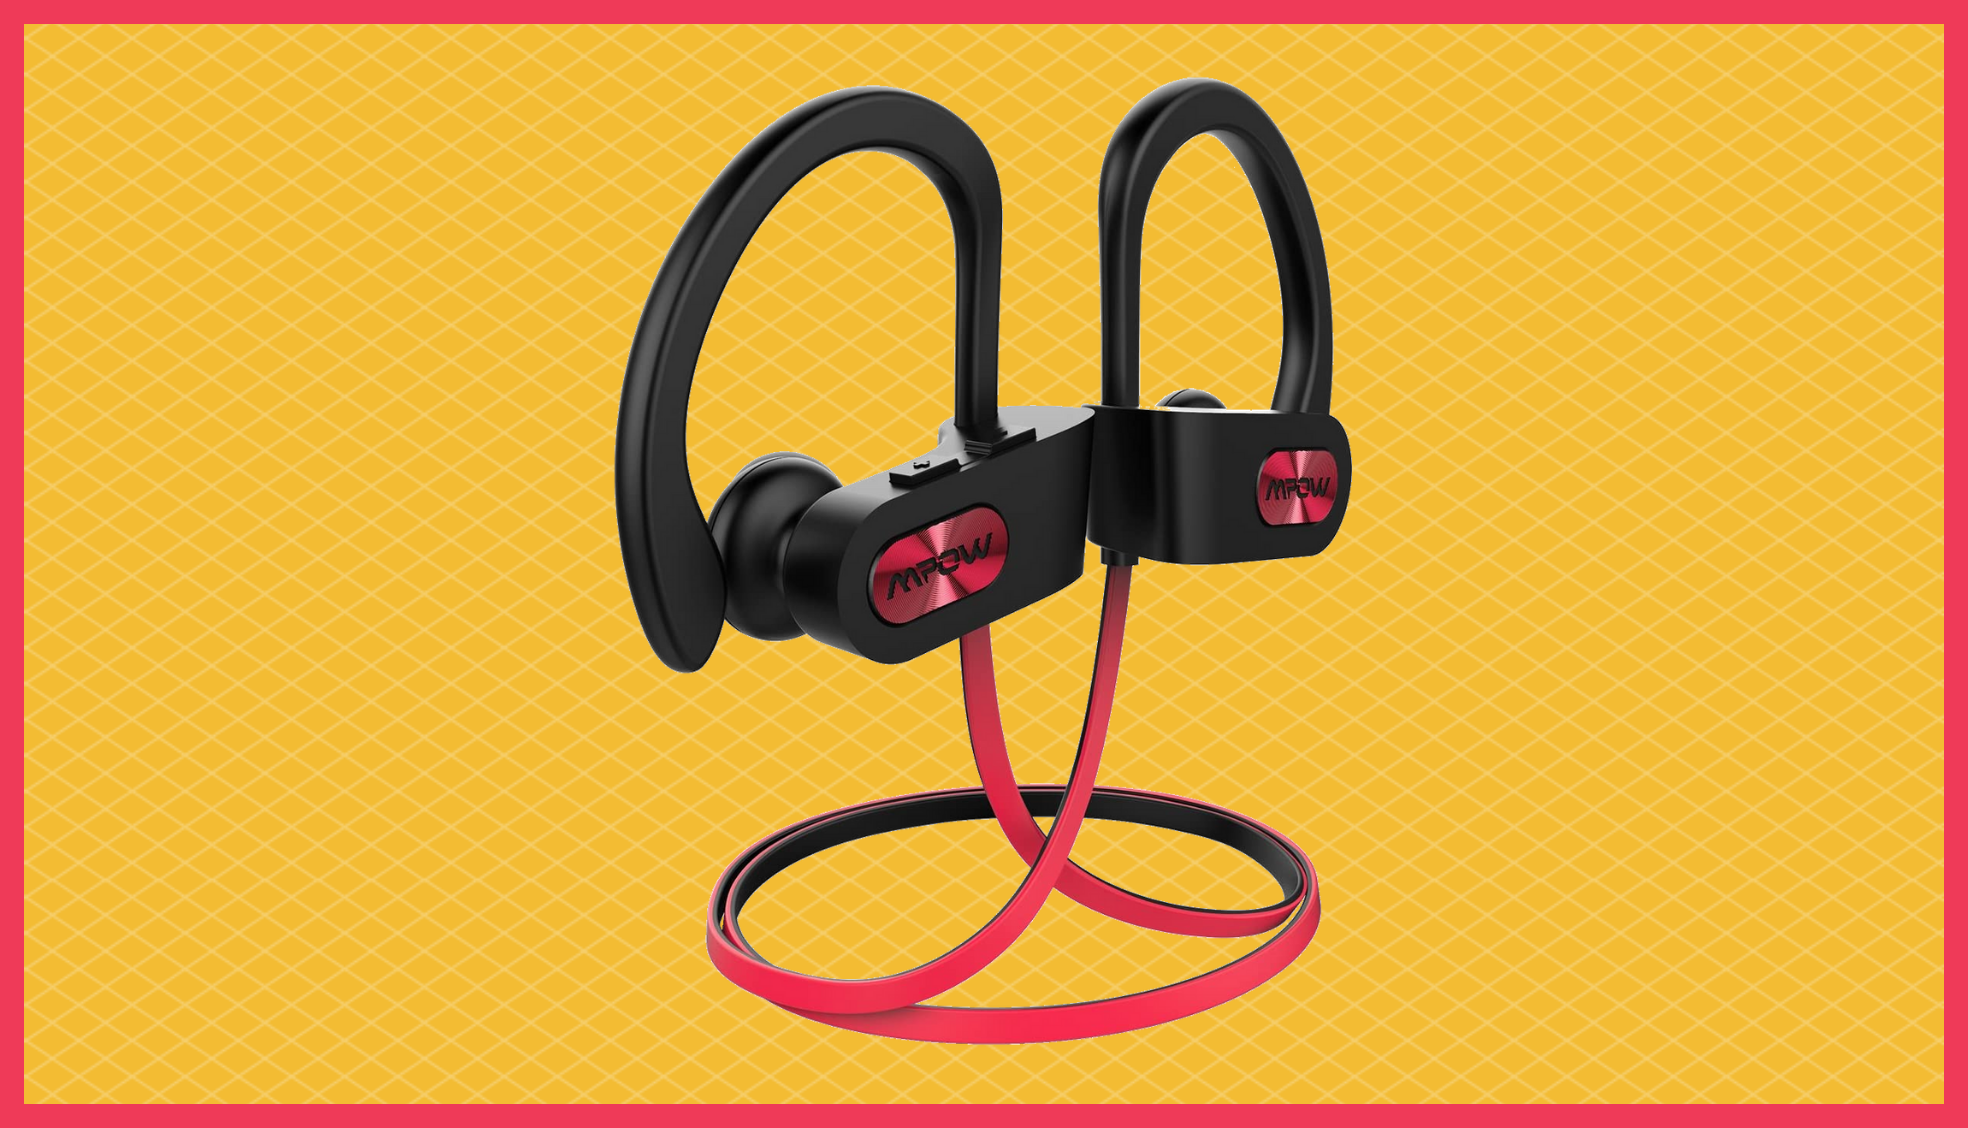 Mpow Flame Bluetooth Headphones Are On Sale At Amazon